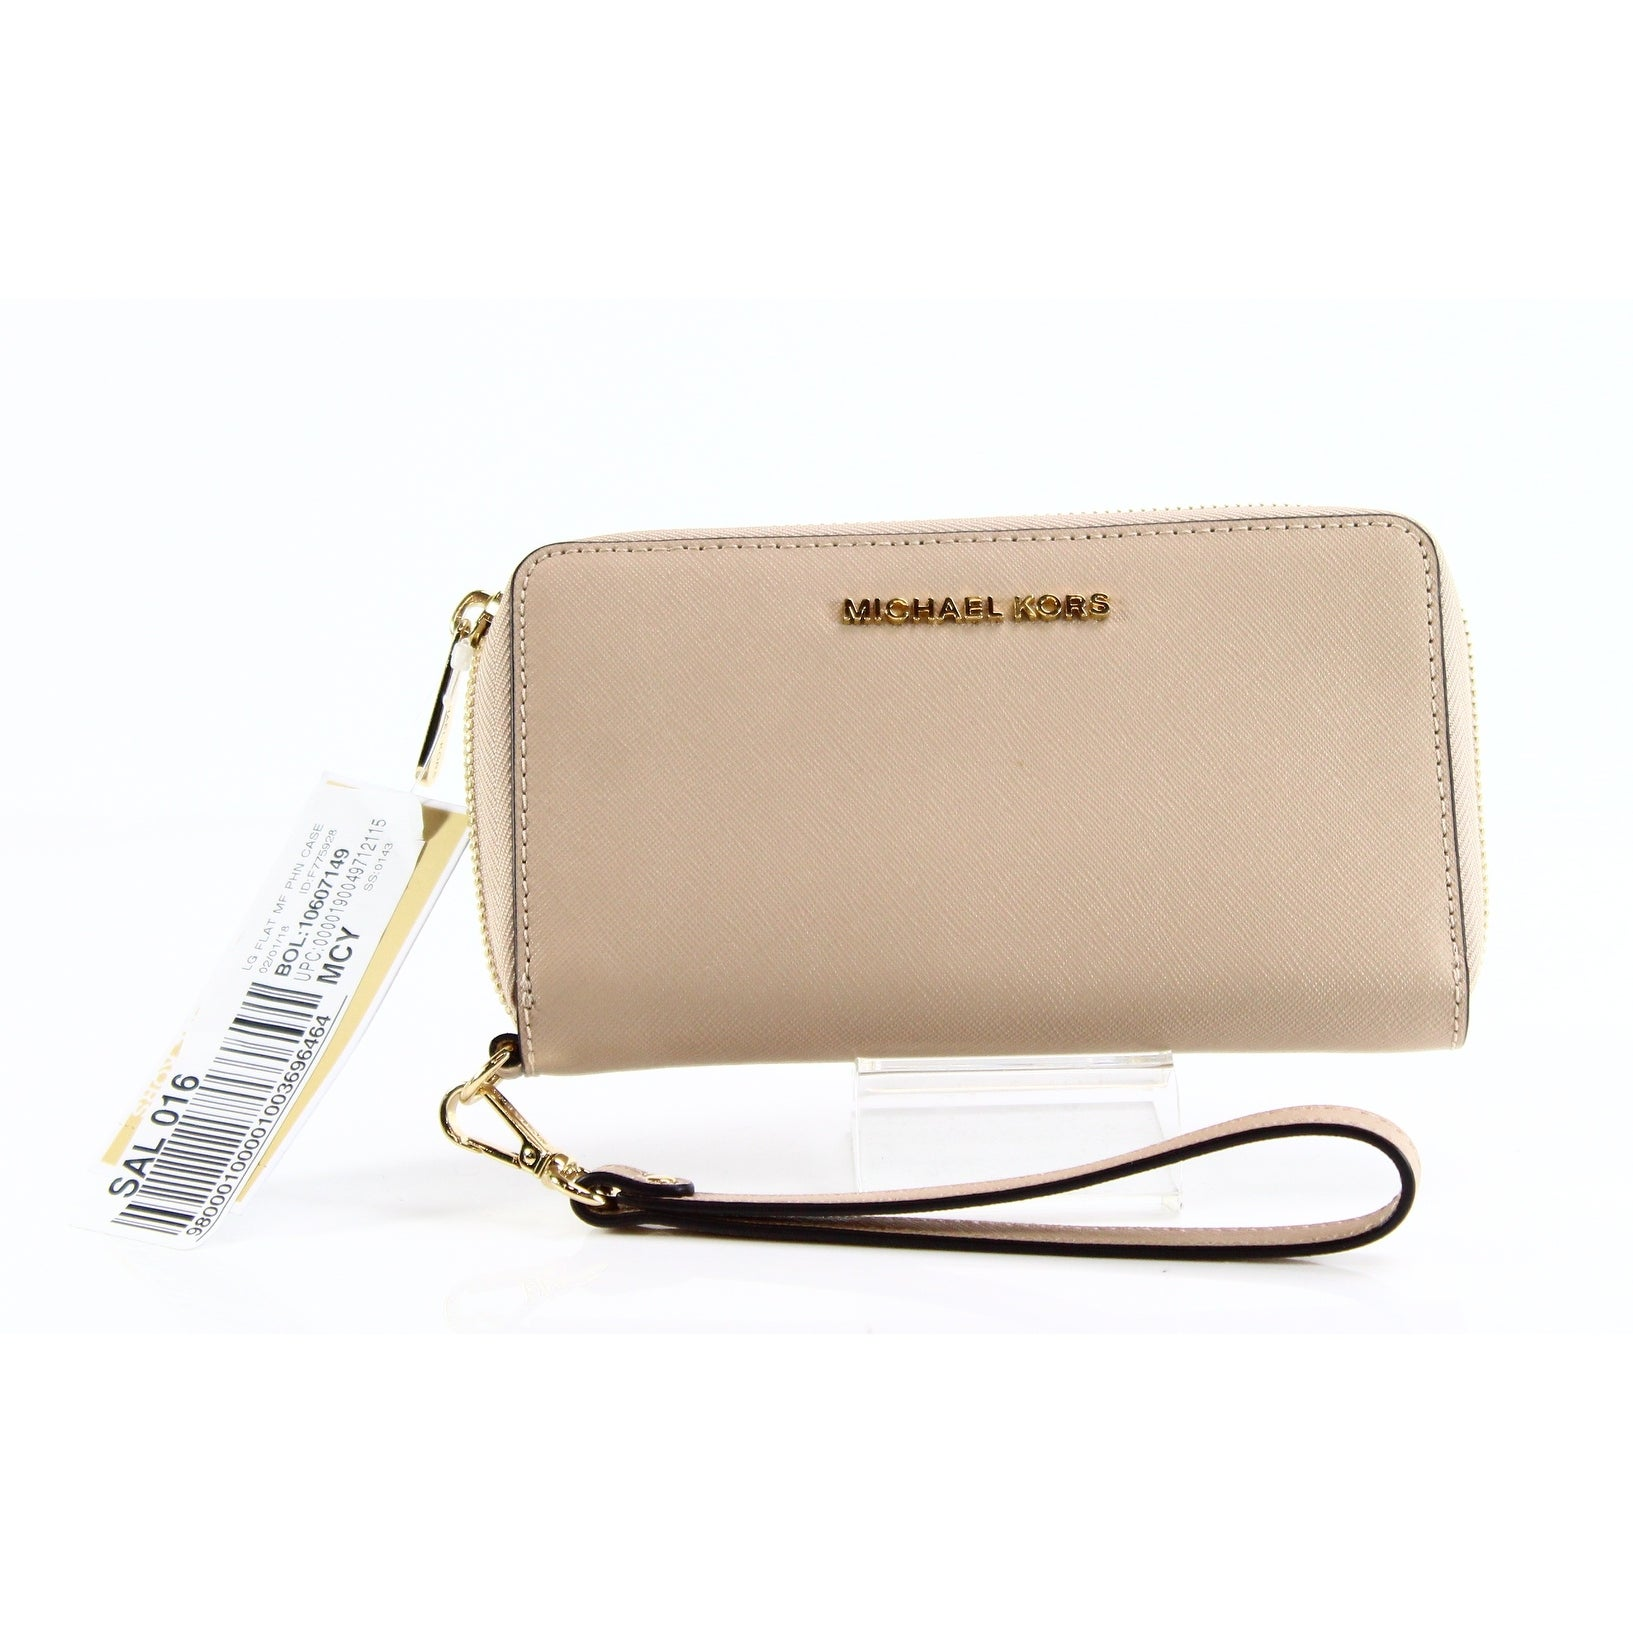 29ef85571e8550 Shop Michael Kors NEW Beige Oyster Jet Set Travel Wristlet Leather Wallet -  Free Shipping Today - Overstock - 20764326